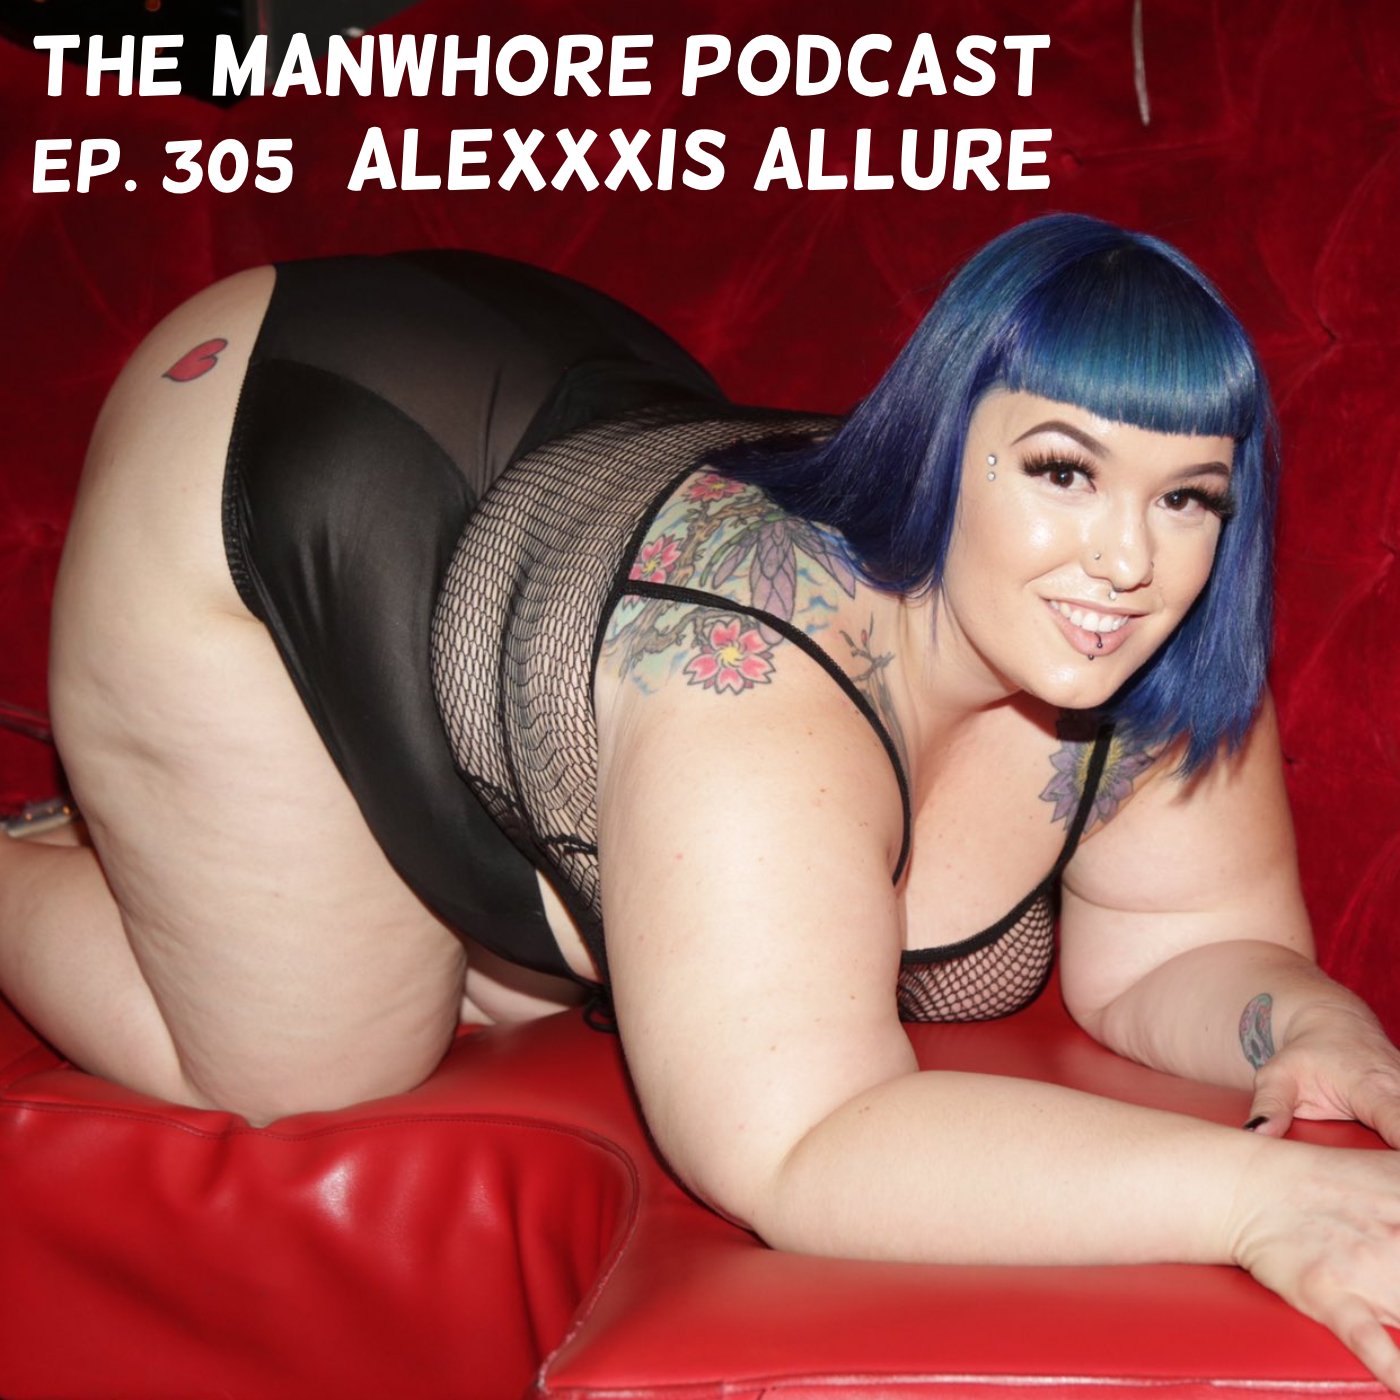 The Manwhore Podcast: A Sex-Positive Quest - Ep. 305: My Creepy Way-Too-Old-For-Me Poly Ex-Boyfriend with Alexxxis Allure